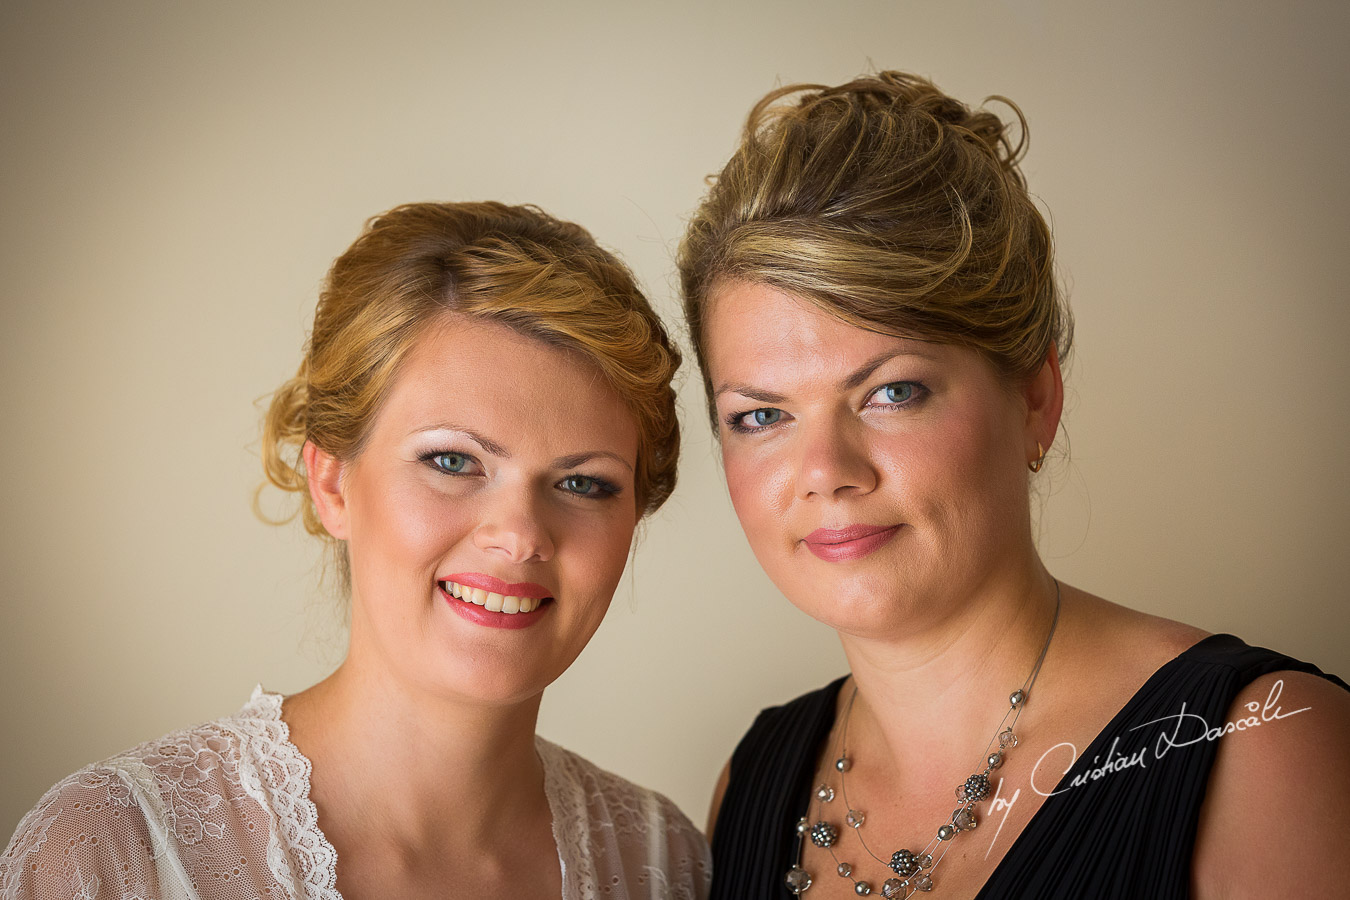 Bride Daria and her sister photographed few moments before the wedding at Elias Beach Hotel in Limassol